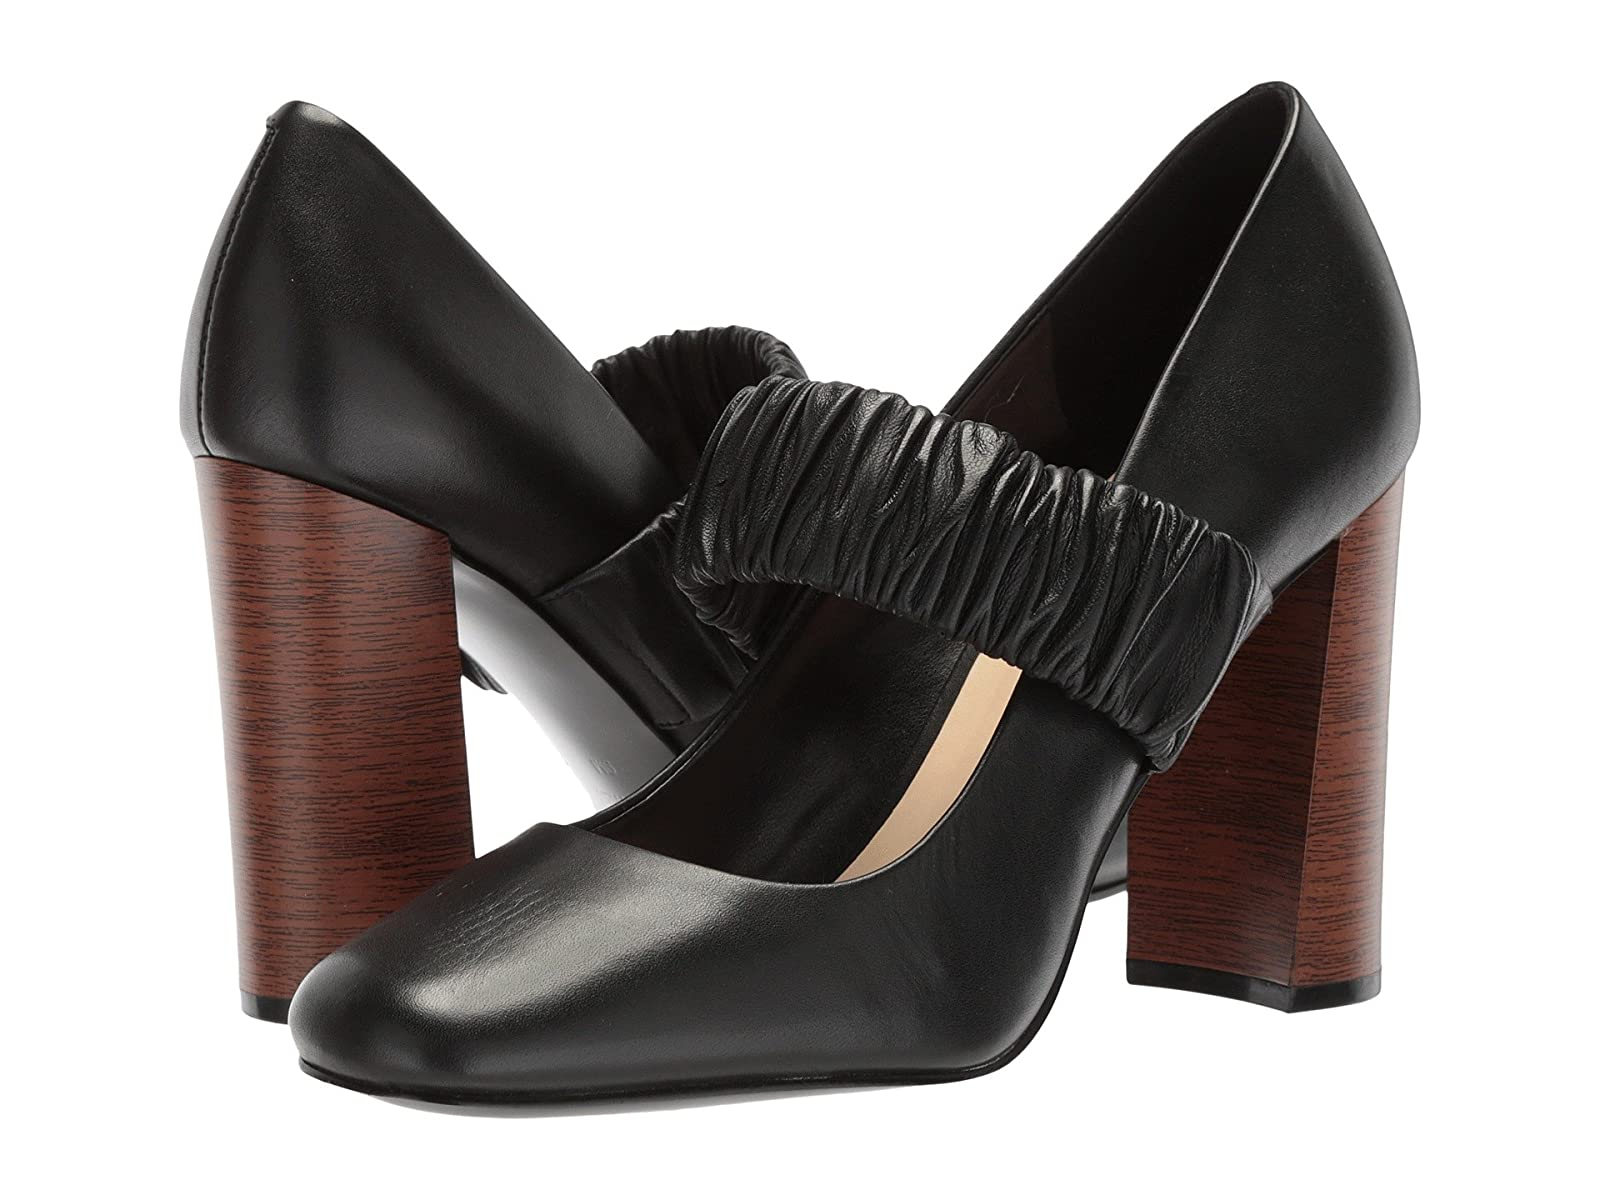 Nine West Decadent Mary Jane PumpCheap and distinctive eye-catching shoes